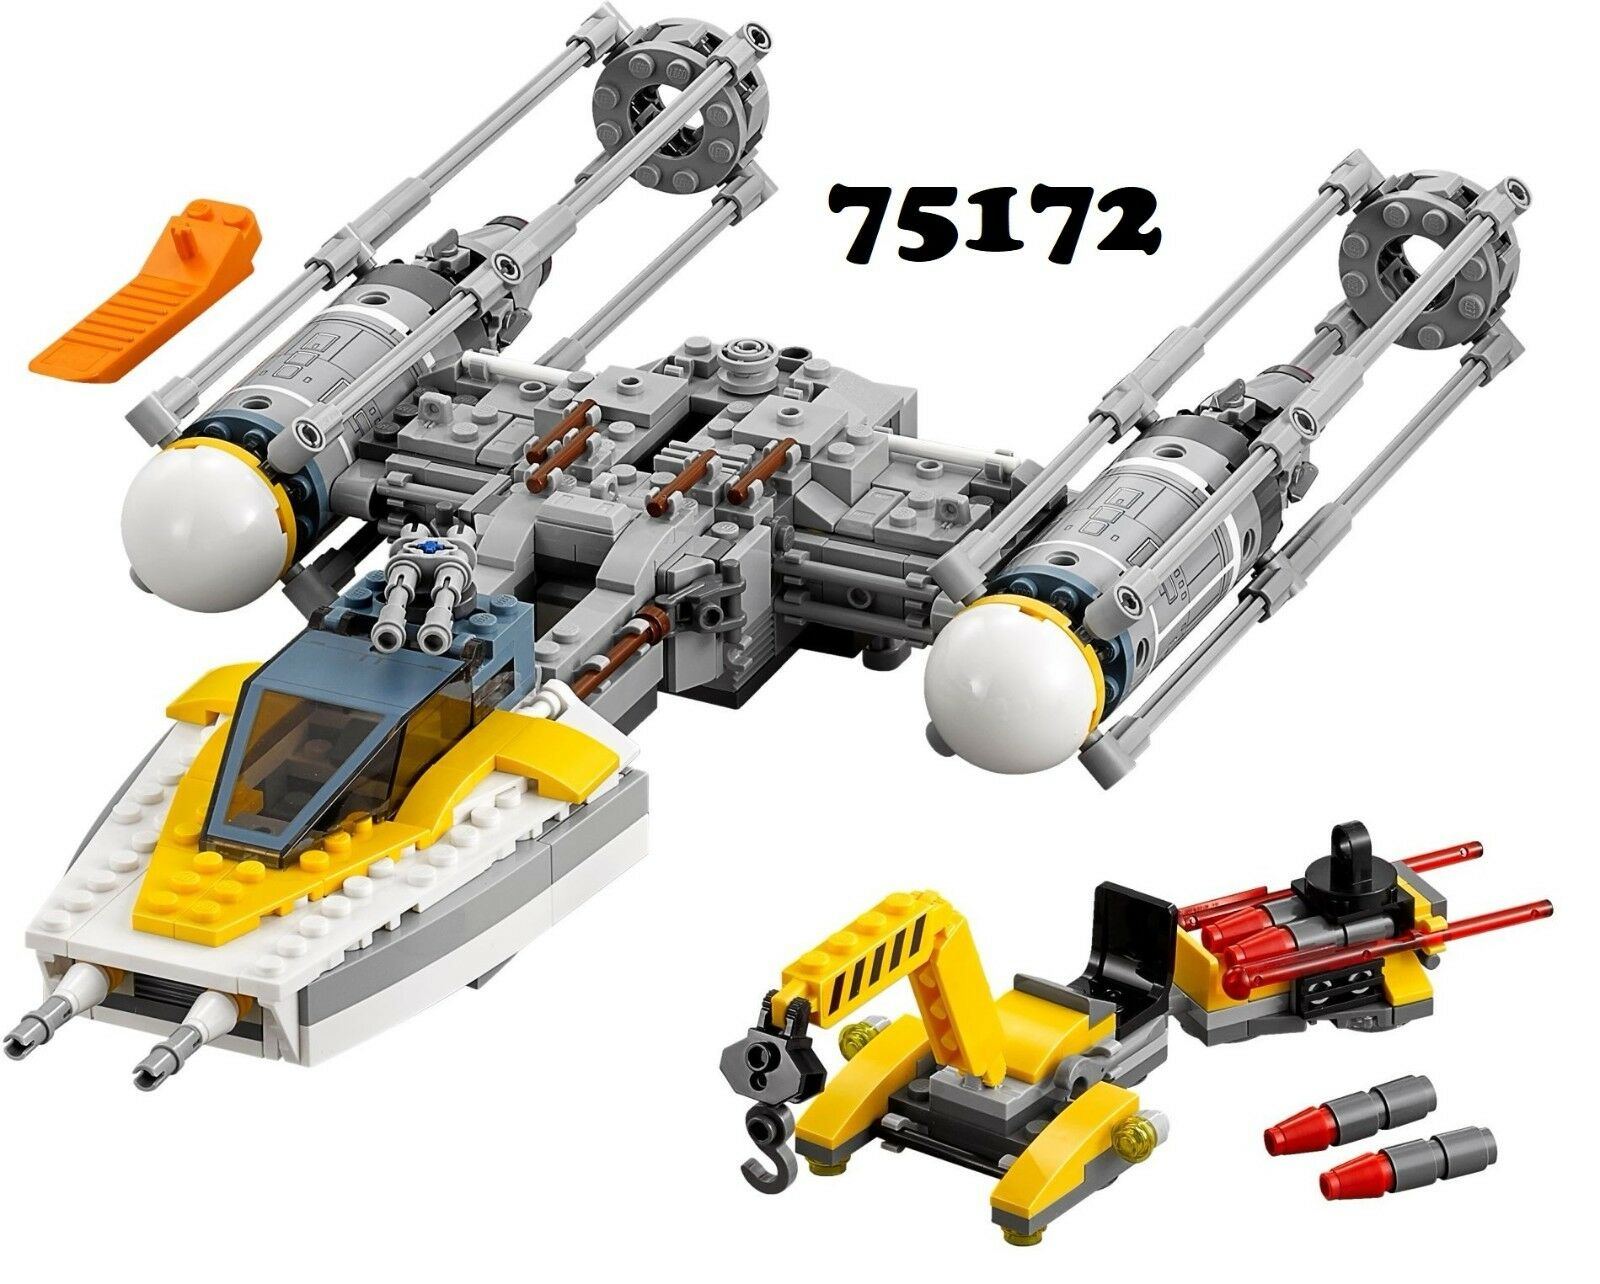 NEW Lego Star Star Star Wars 75172 Y-Wing Starfighter with ALT BUILD NO MINIFIGS bc6b84